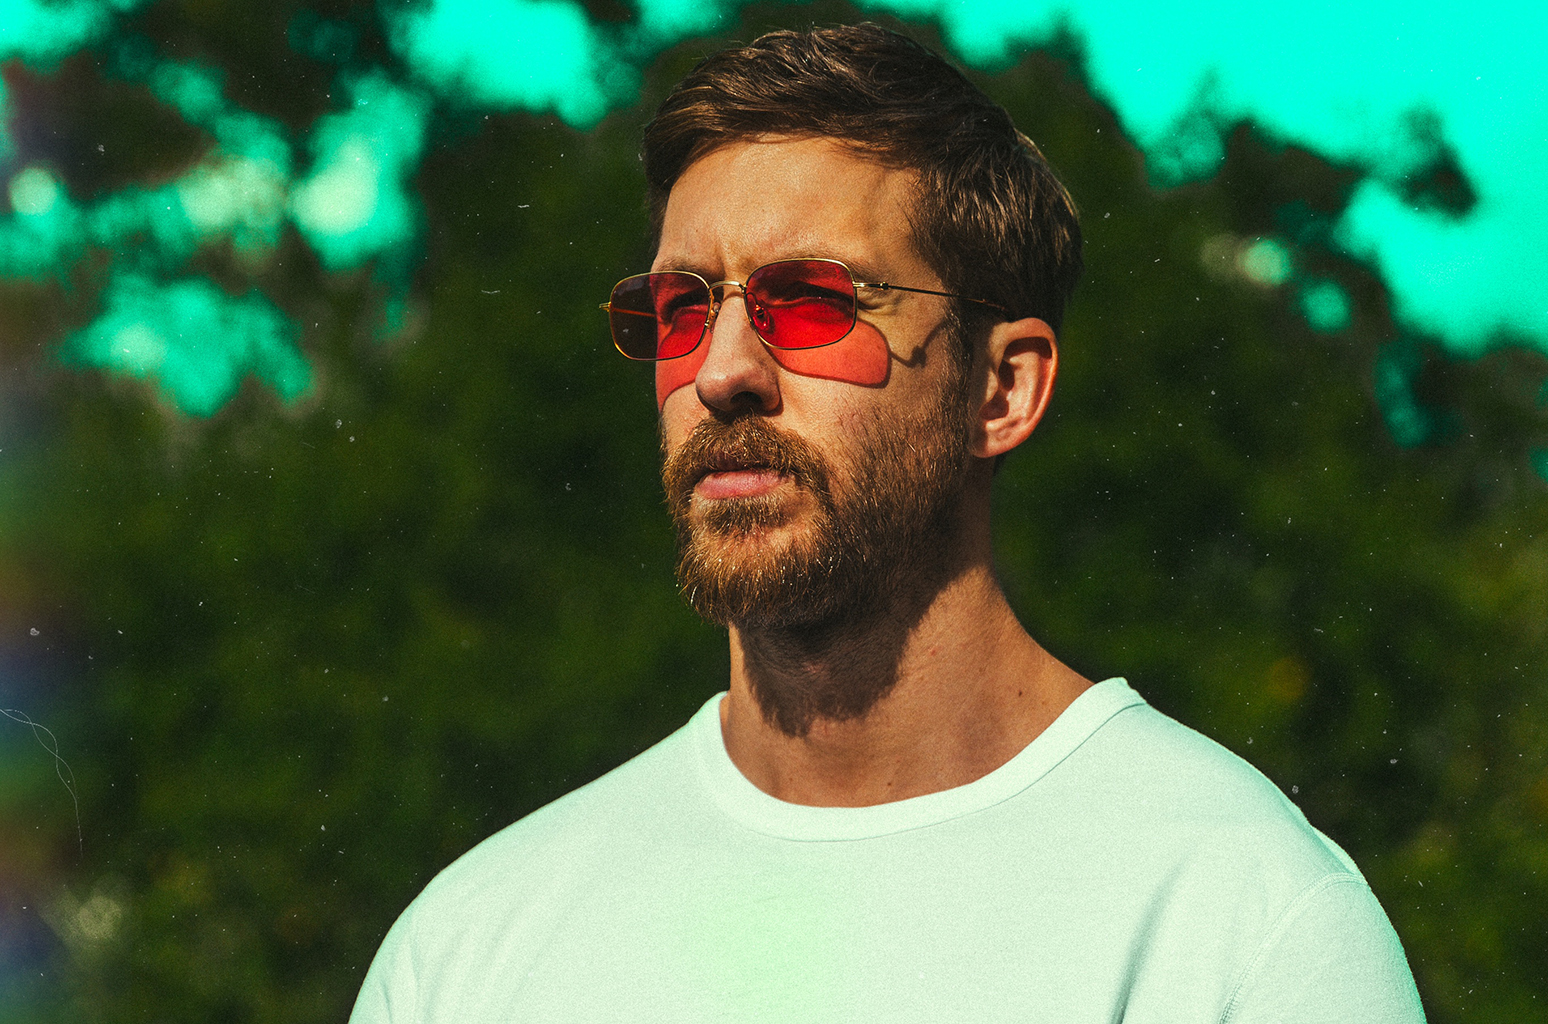 calvin-harris-2017-press-billboard-1548